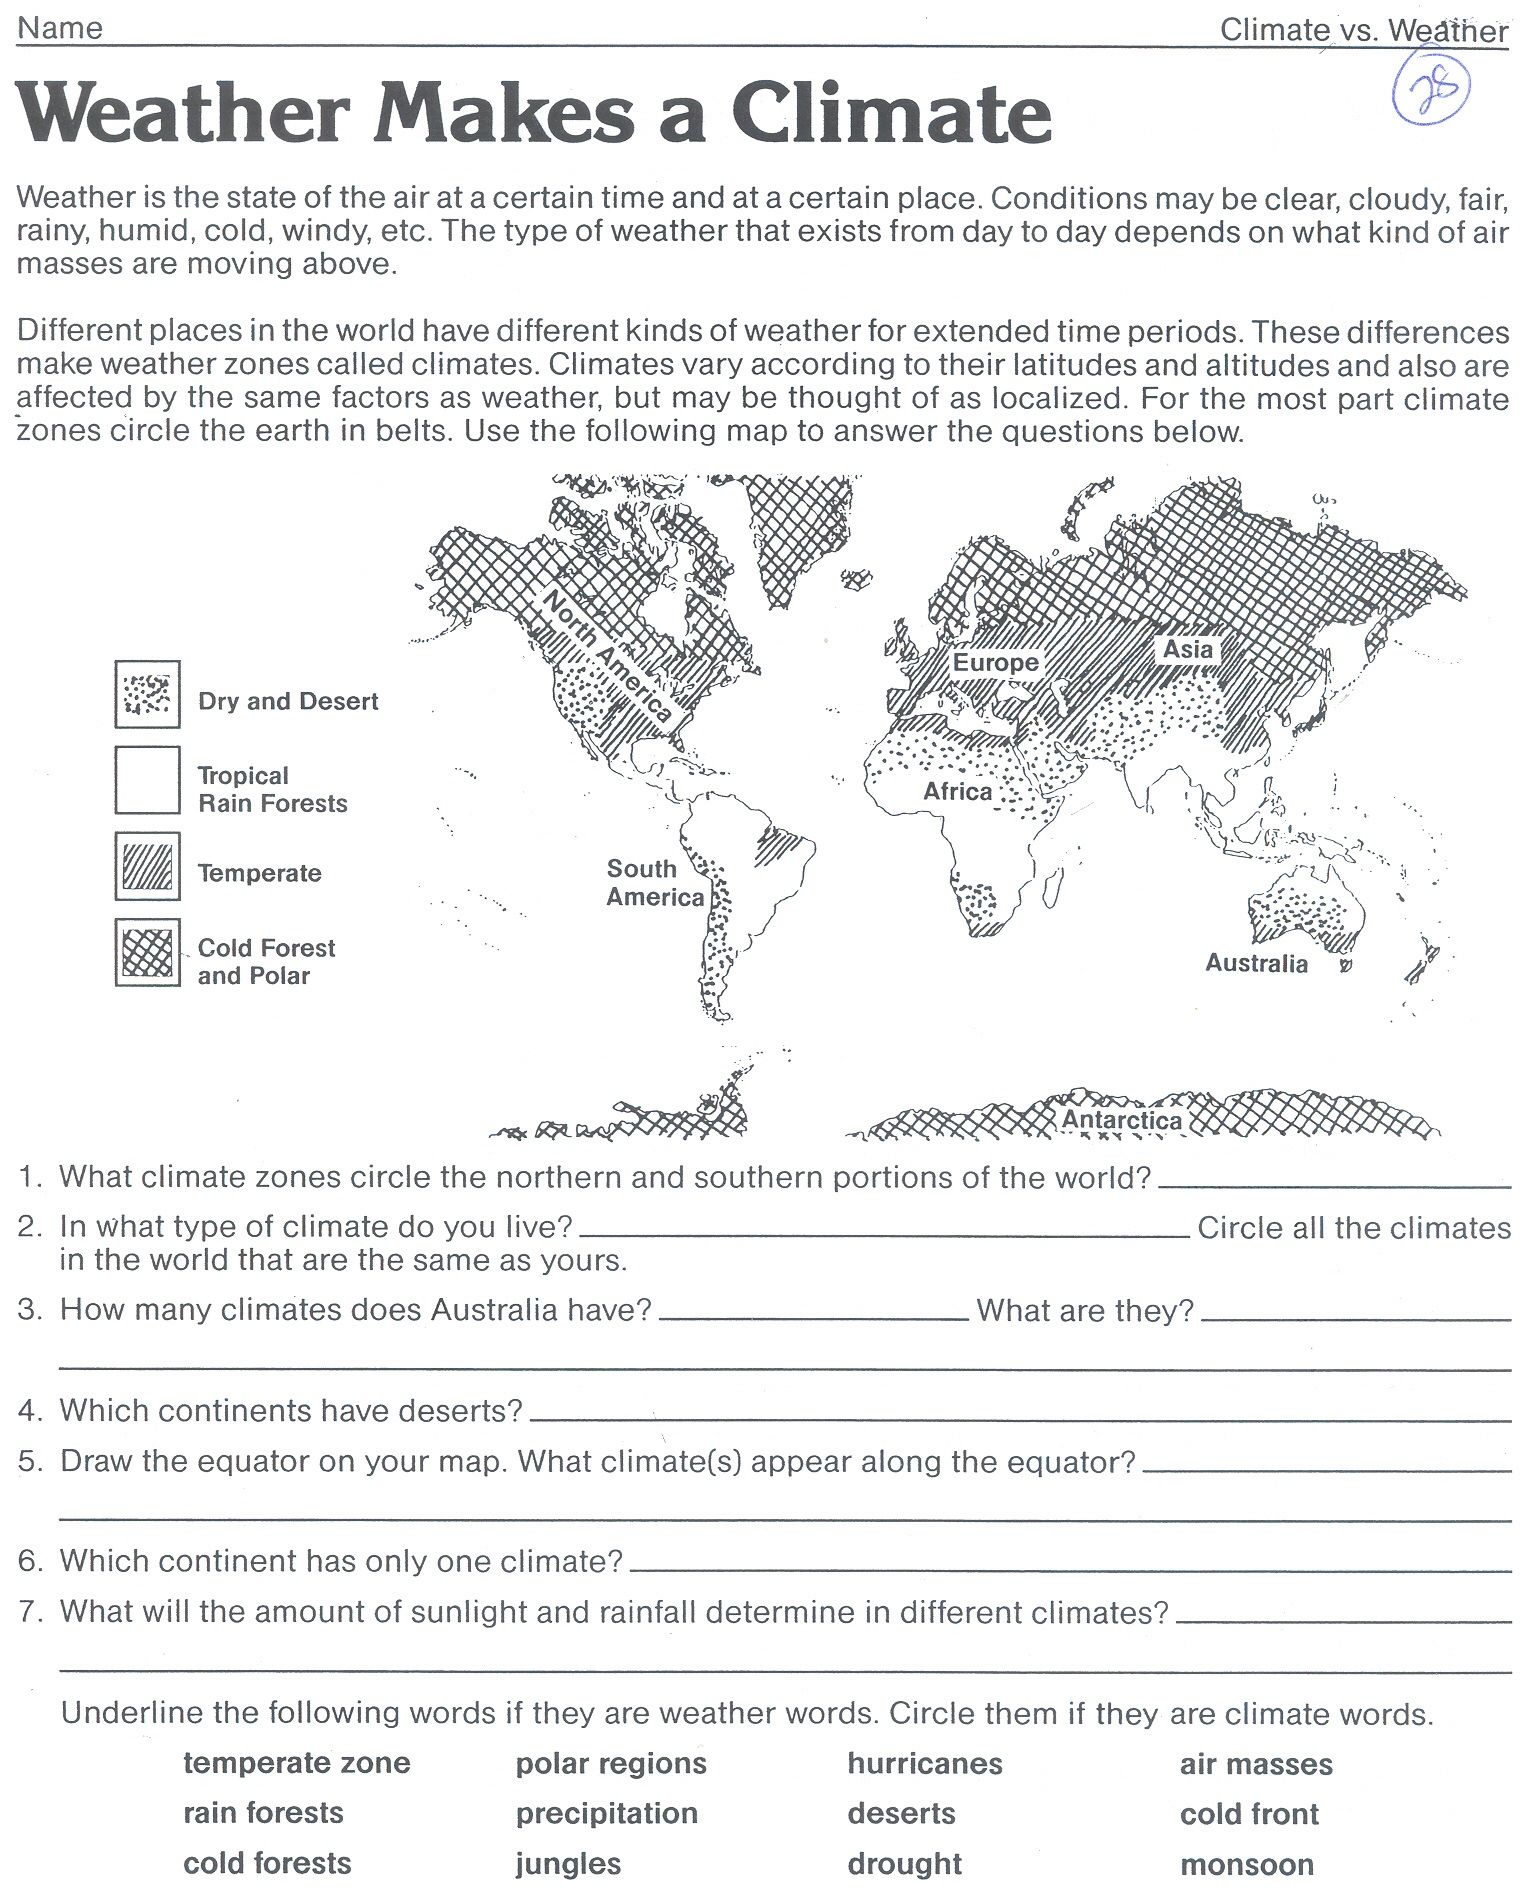 worksheet Weather Map Symbols Worksheet weather makes a climate worksheet science pinterest worksheets worksheet